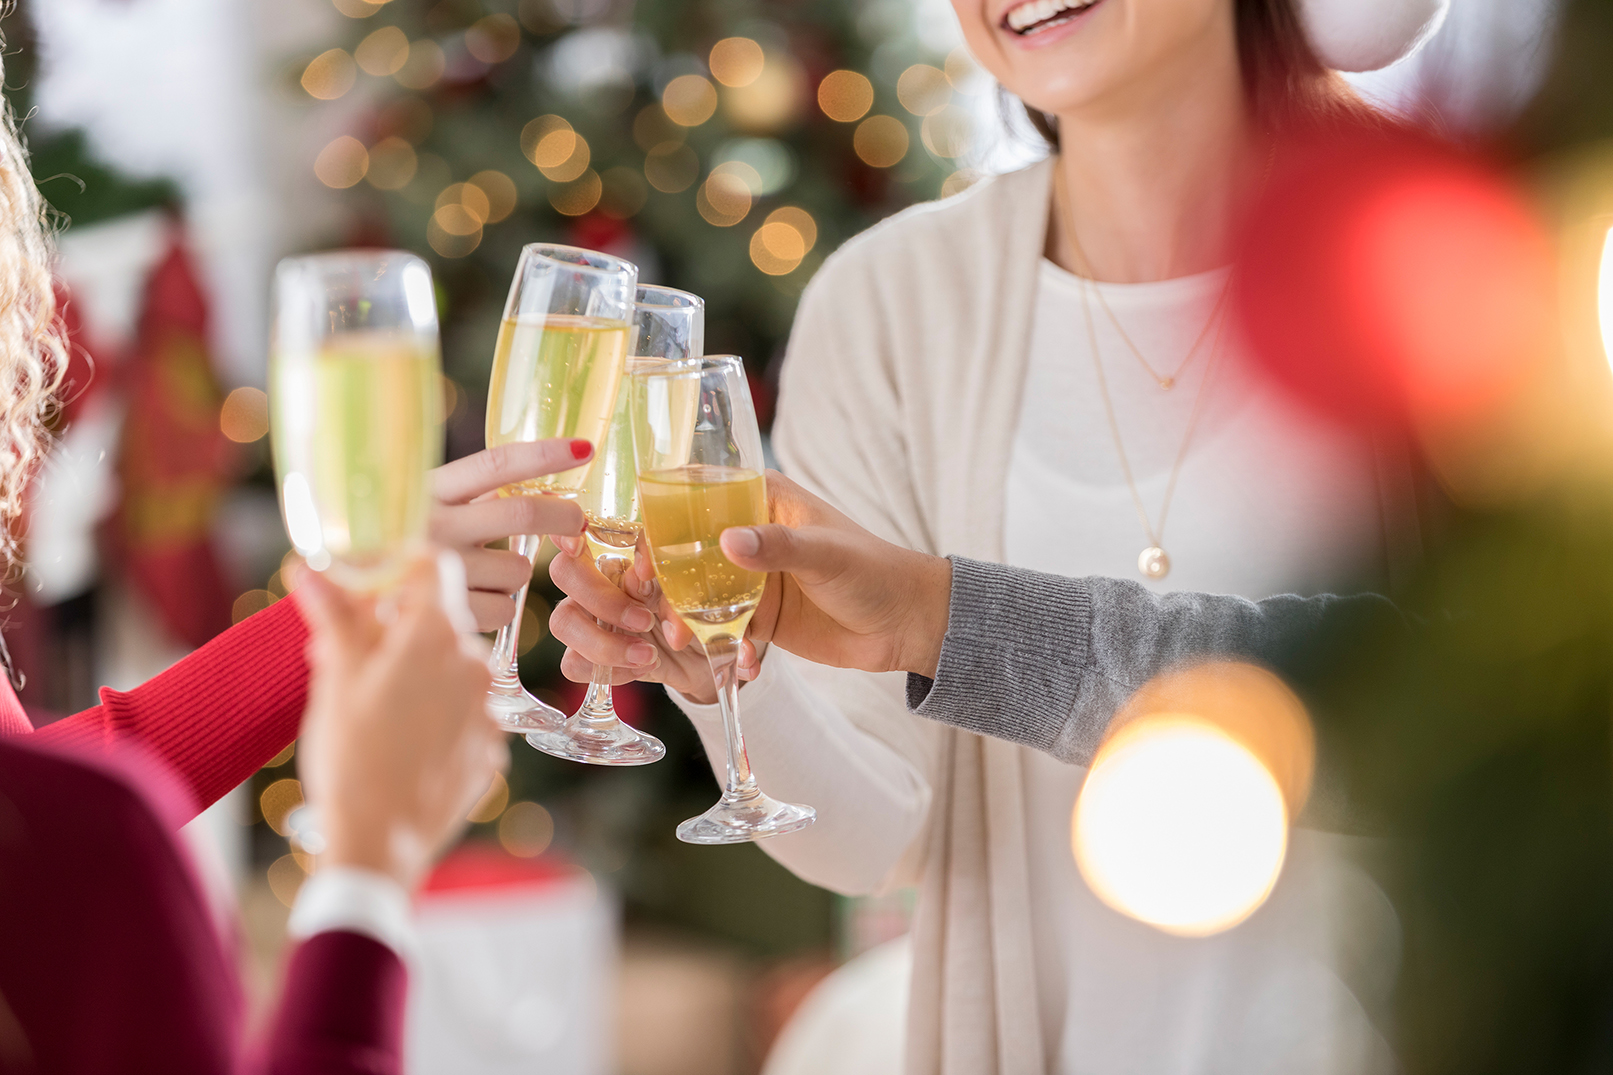 A group of friends toast the Christmas or New Year holiday. They are holding champagne flutes.